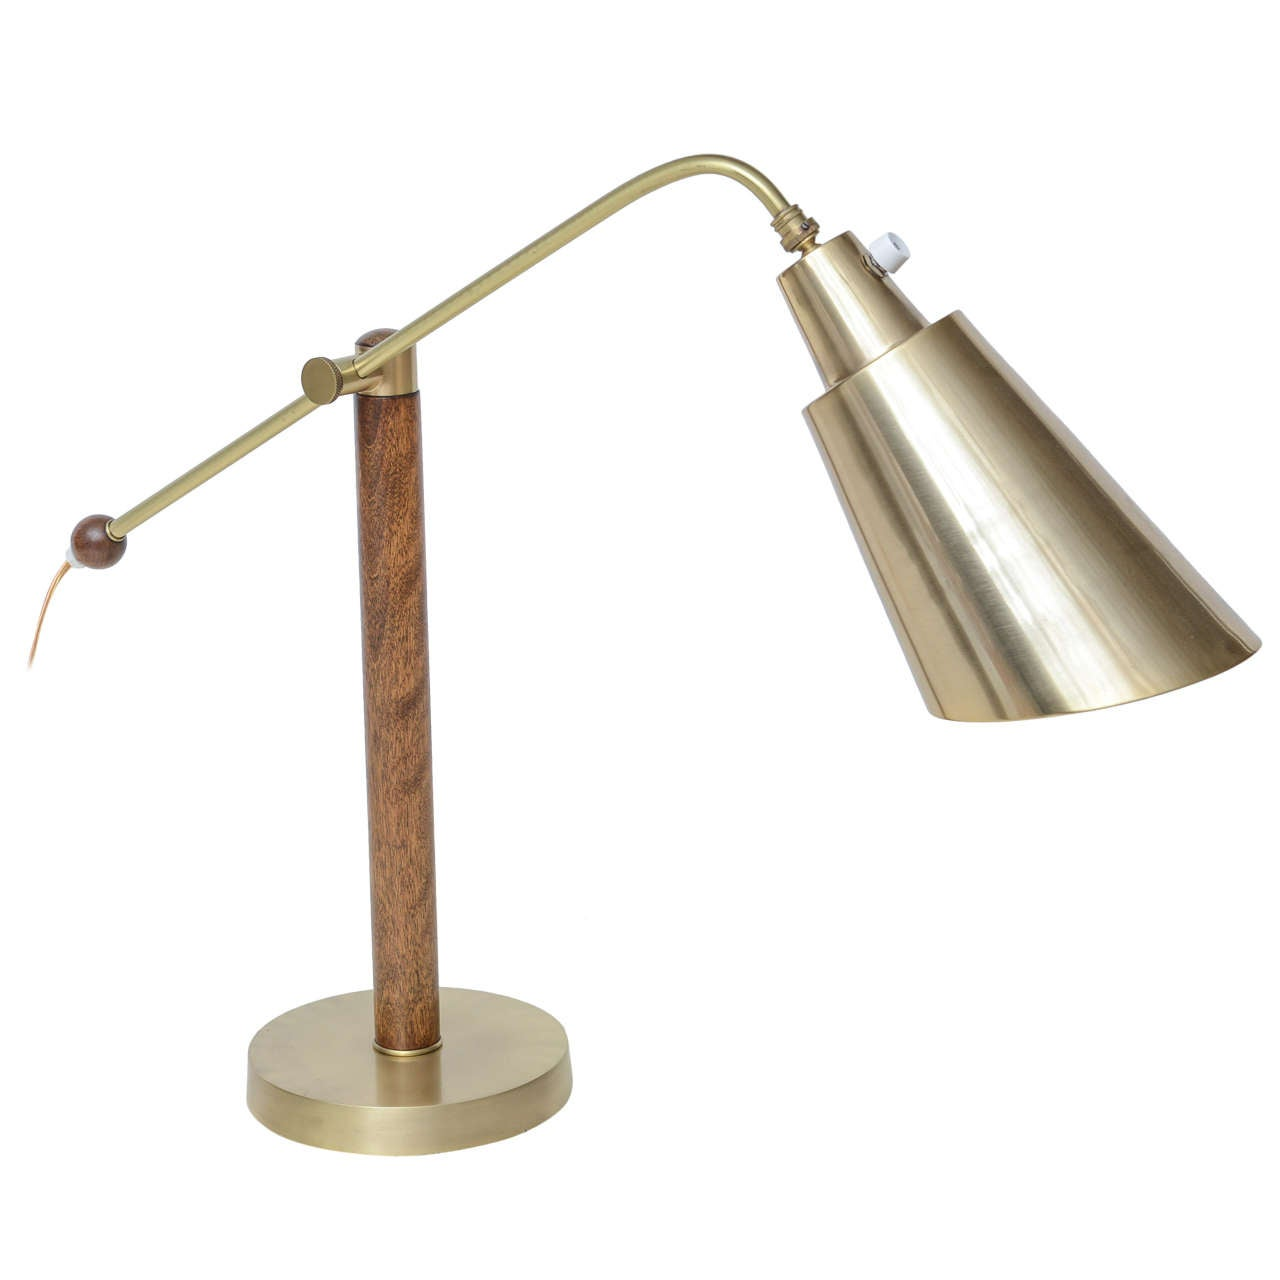 60's American Modernist Wood and Brushed Brass Desk Lamp ...